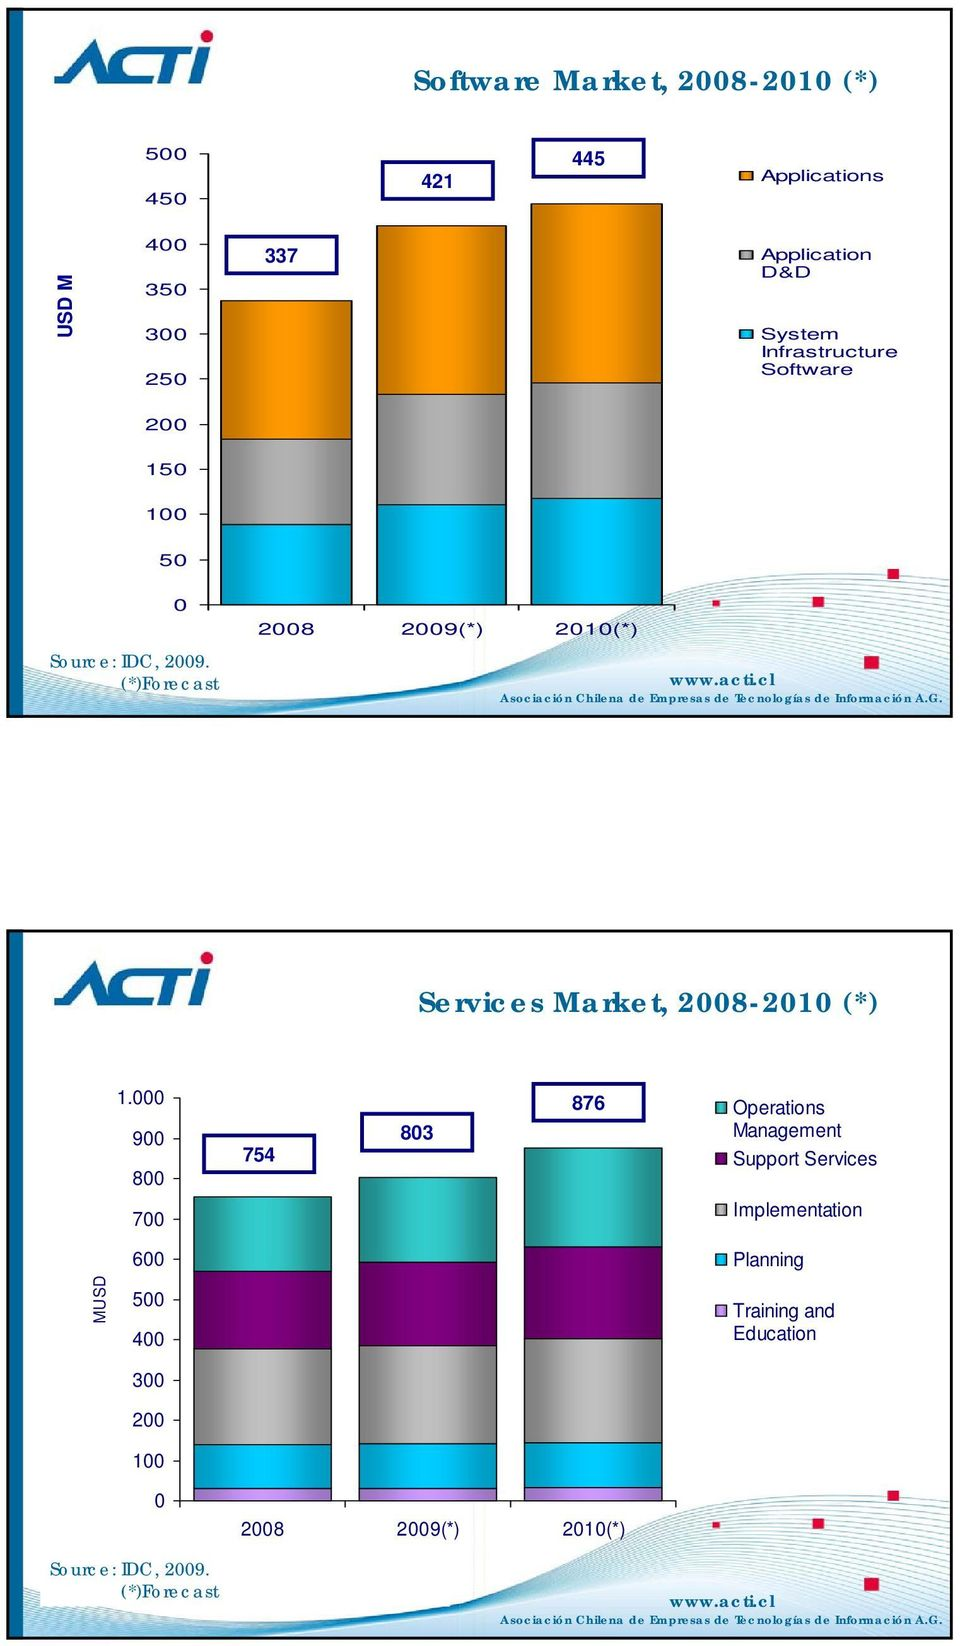 (*)Forecast 2008 2009(*) 2010(*) Services Market, 2008-2010 (*) 1.